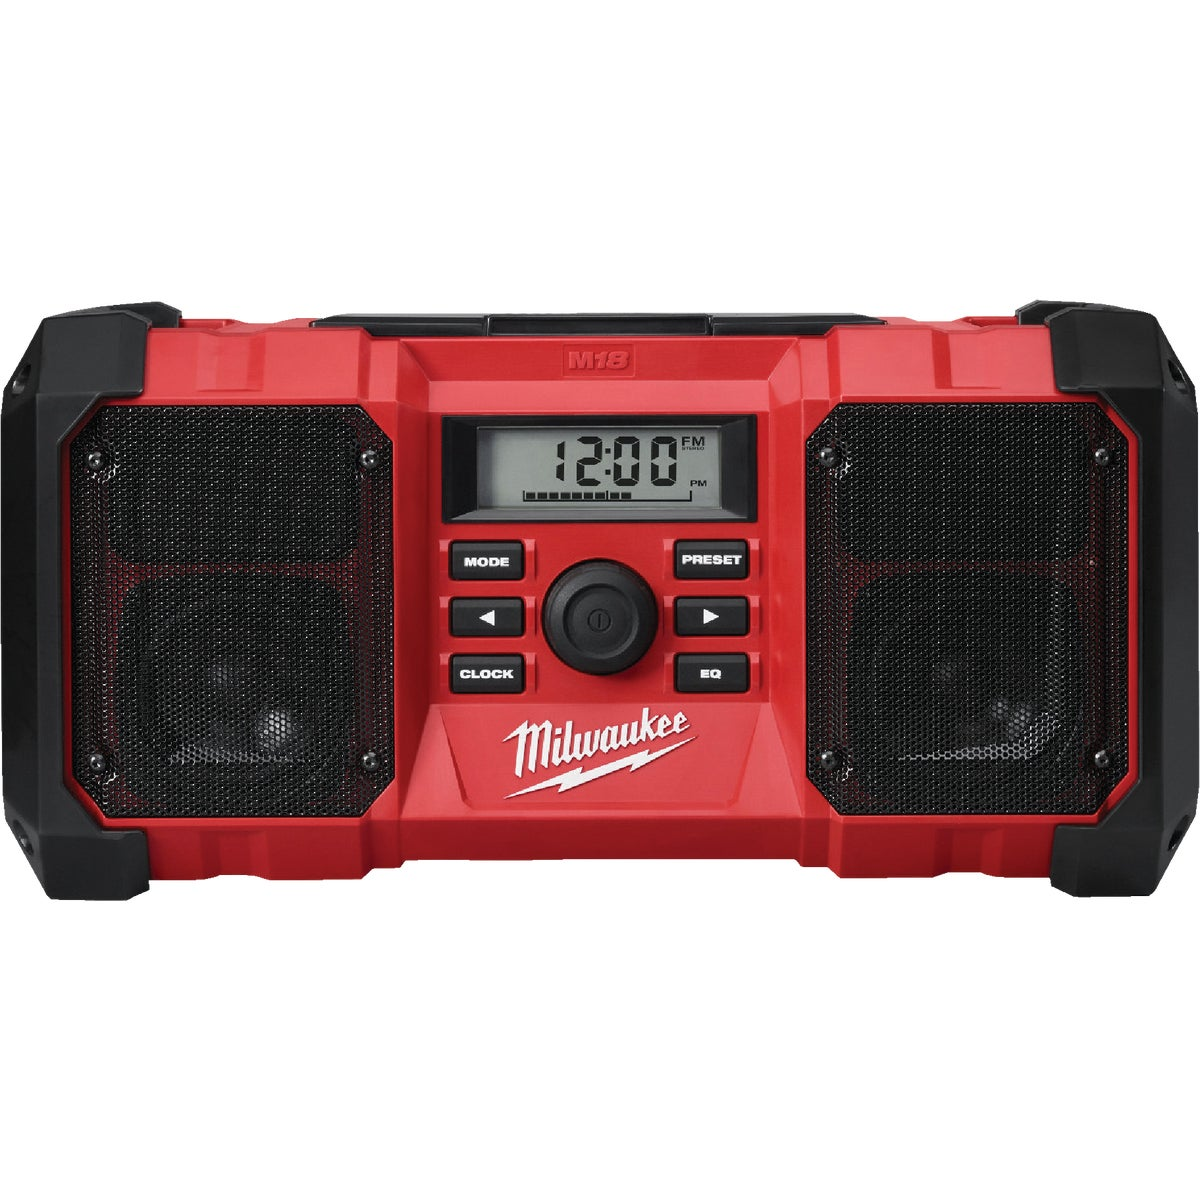 M18 JOBSITE RADIO - 279020 by Milwaukee Elec Tool